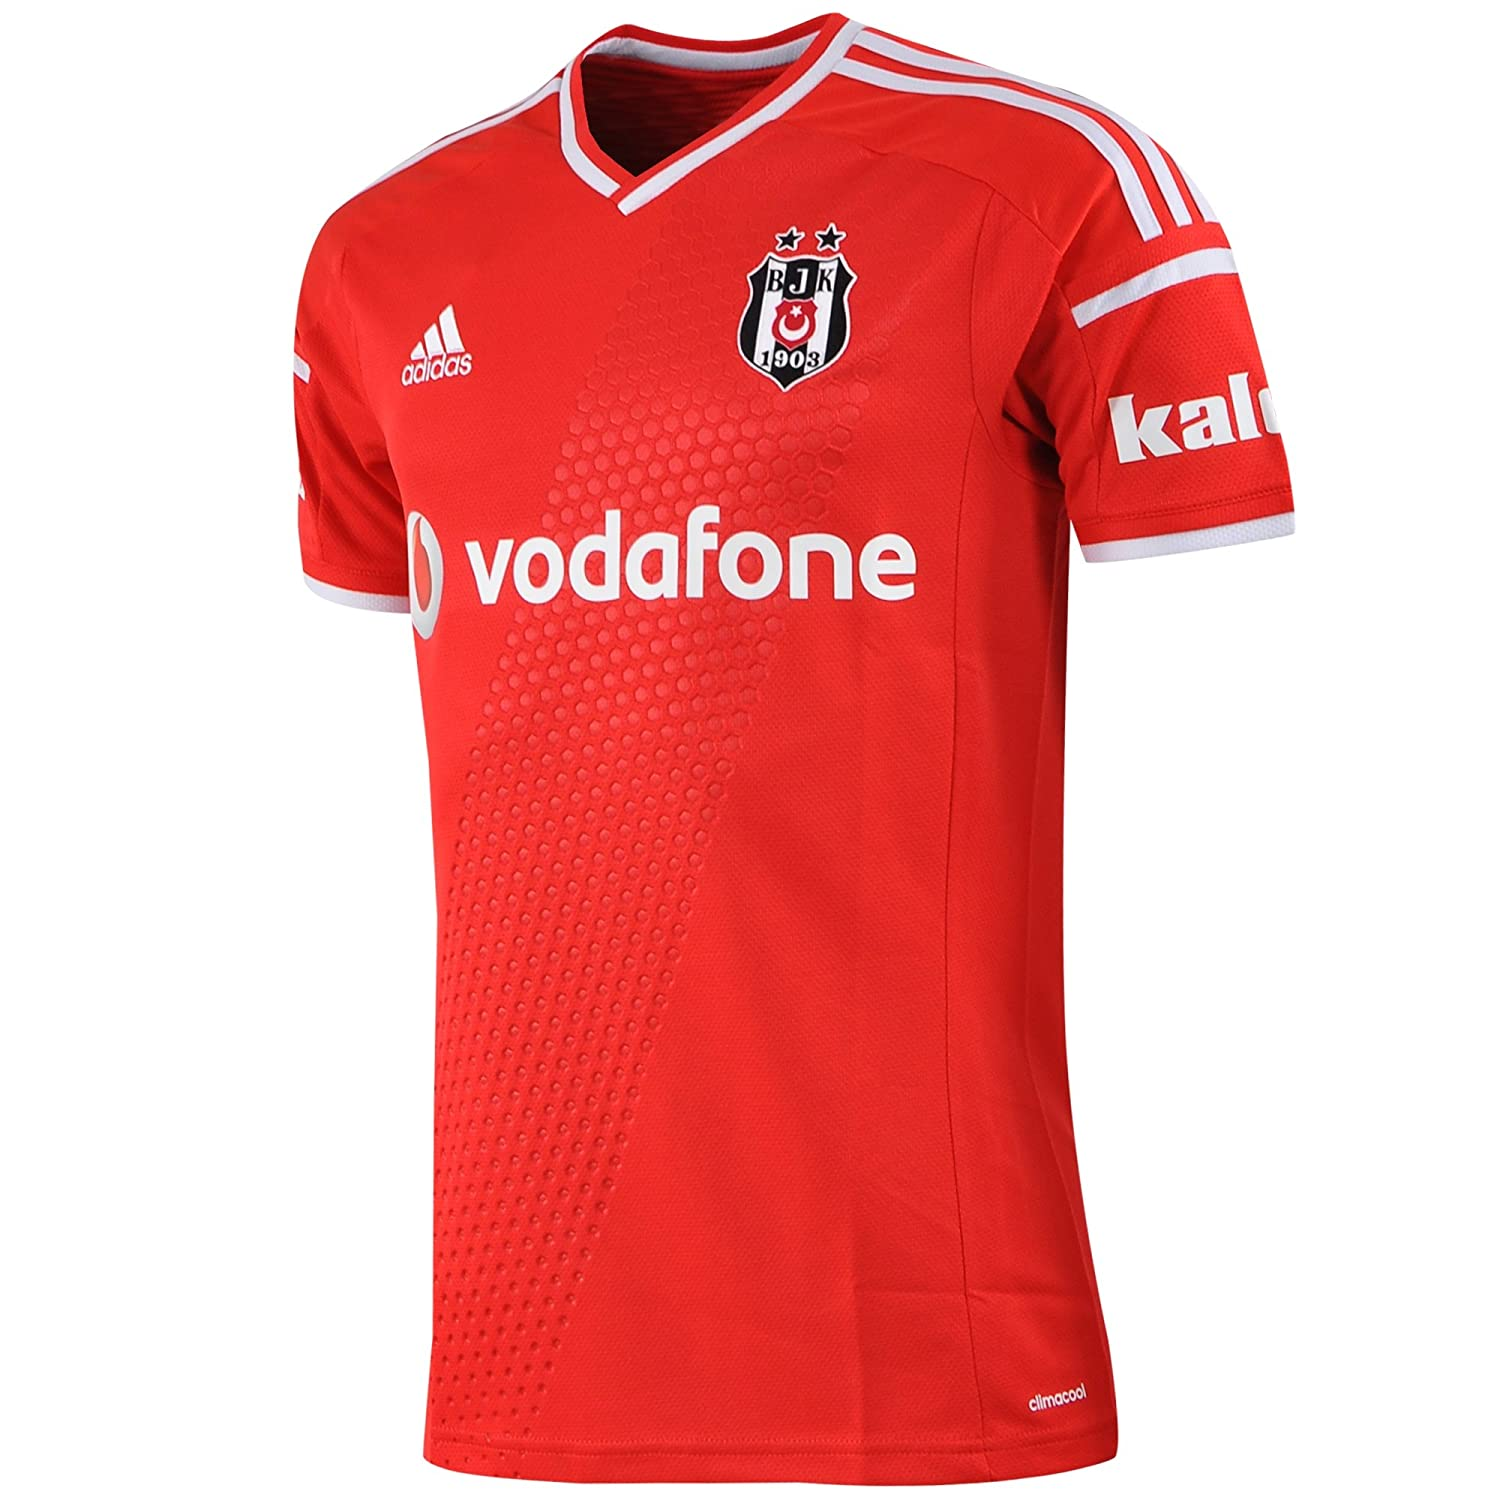 9da13ee51 Besiktas Istanbul adidas Jersey  Amazon.co.uk  Sports   Outdoors